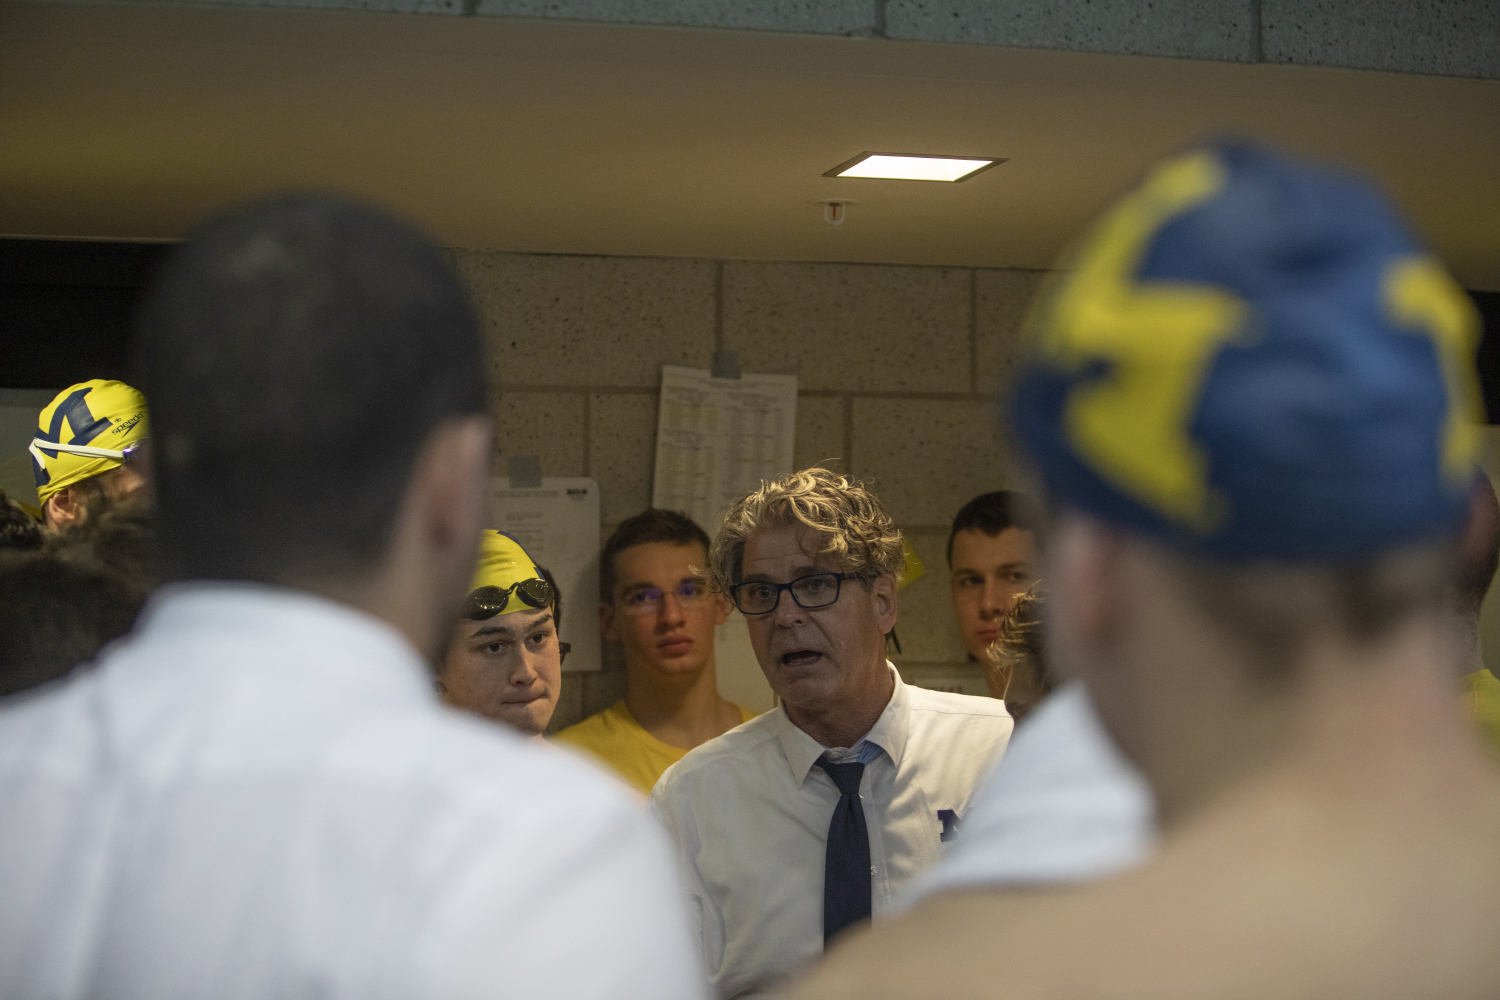 Michigan+head+coach+Mike+Bottom+speaks+to+his+athletes+before+final+competition+of+the+Big+10+Swimming+Championships+on+Saturday%2C+March+2%2C+2019.+%28Ryan+Adams%2FThe+Daily+Iowan%29